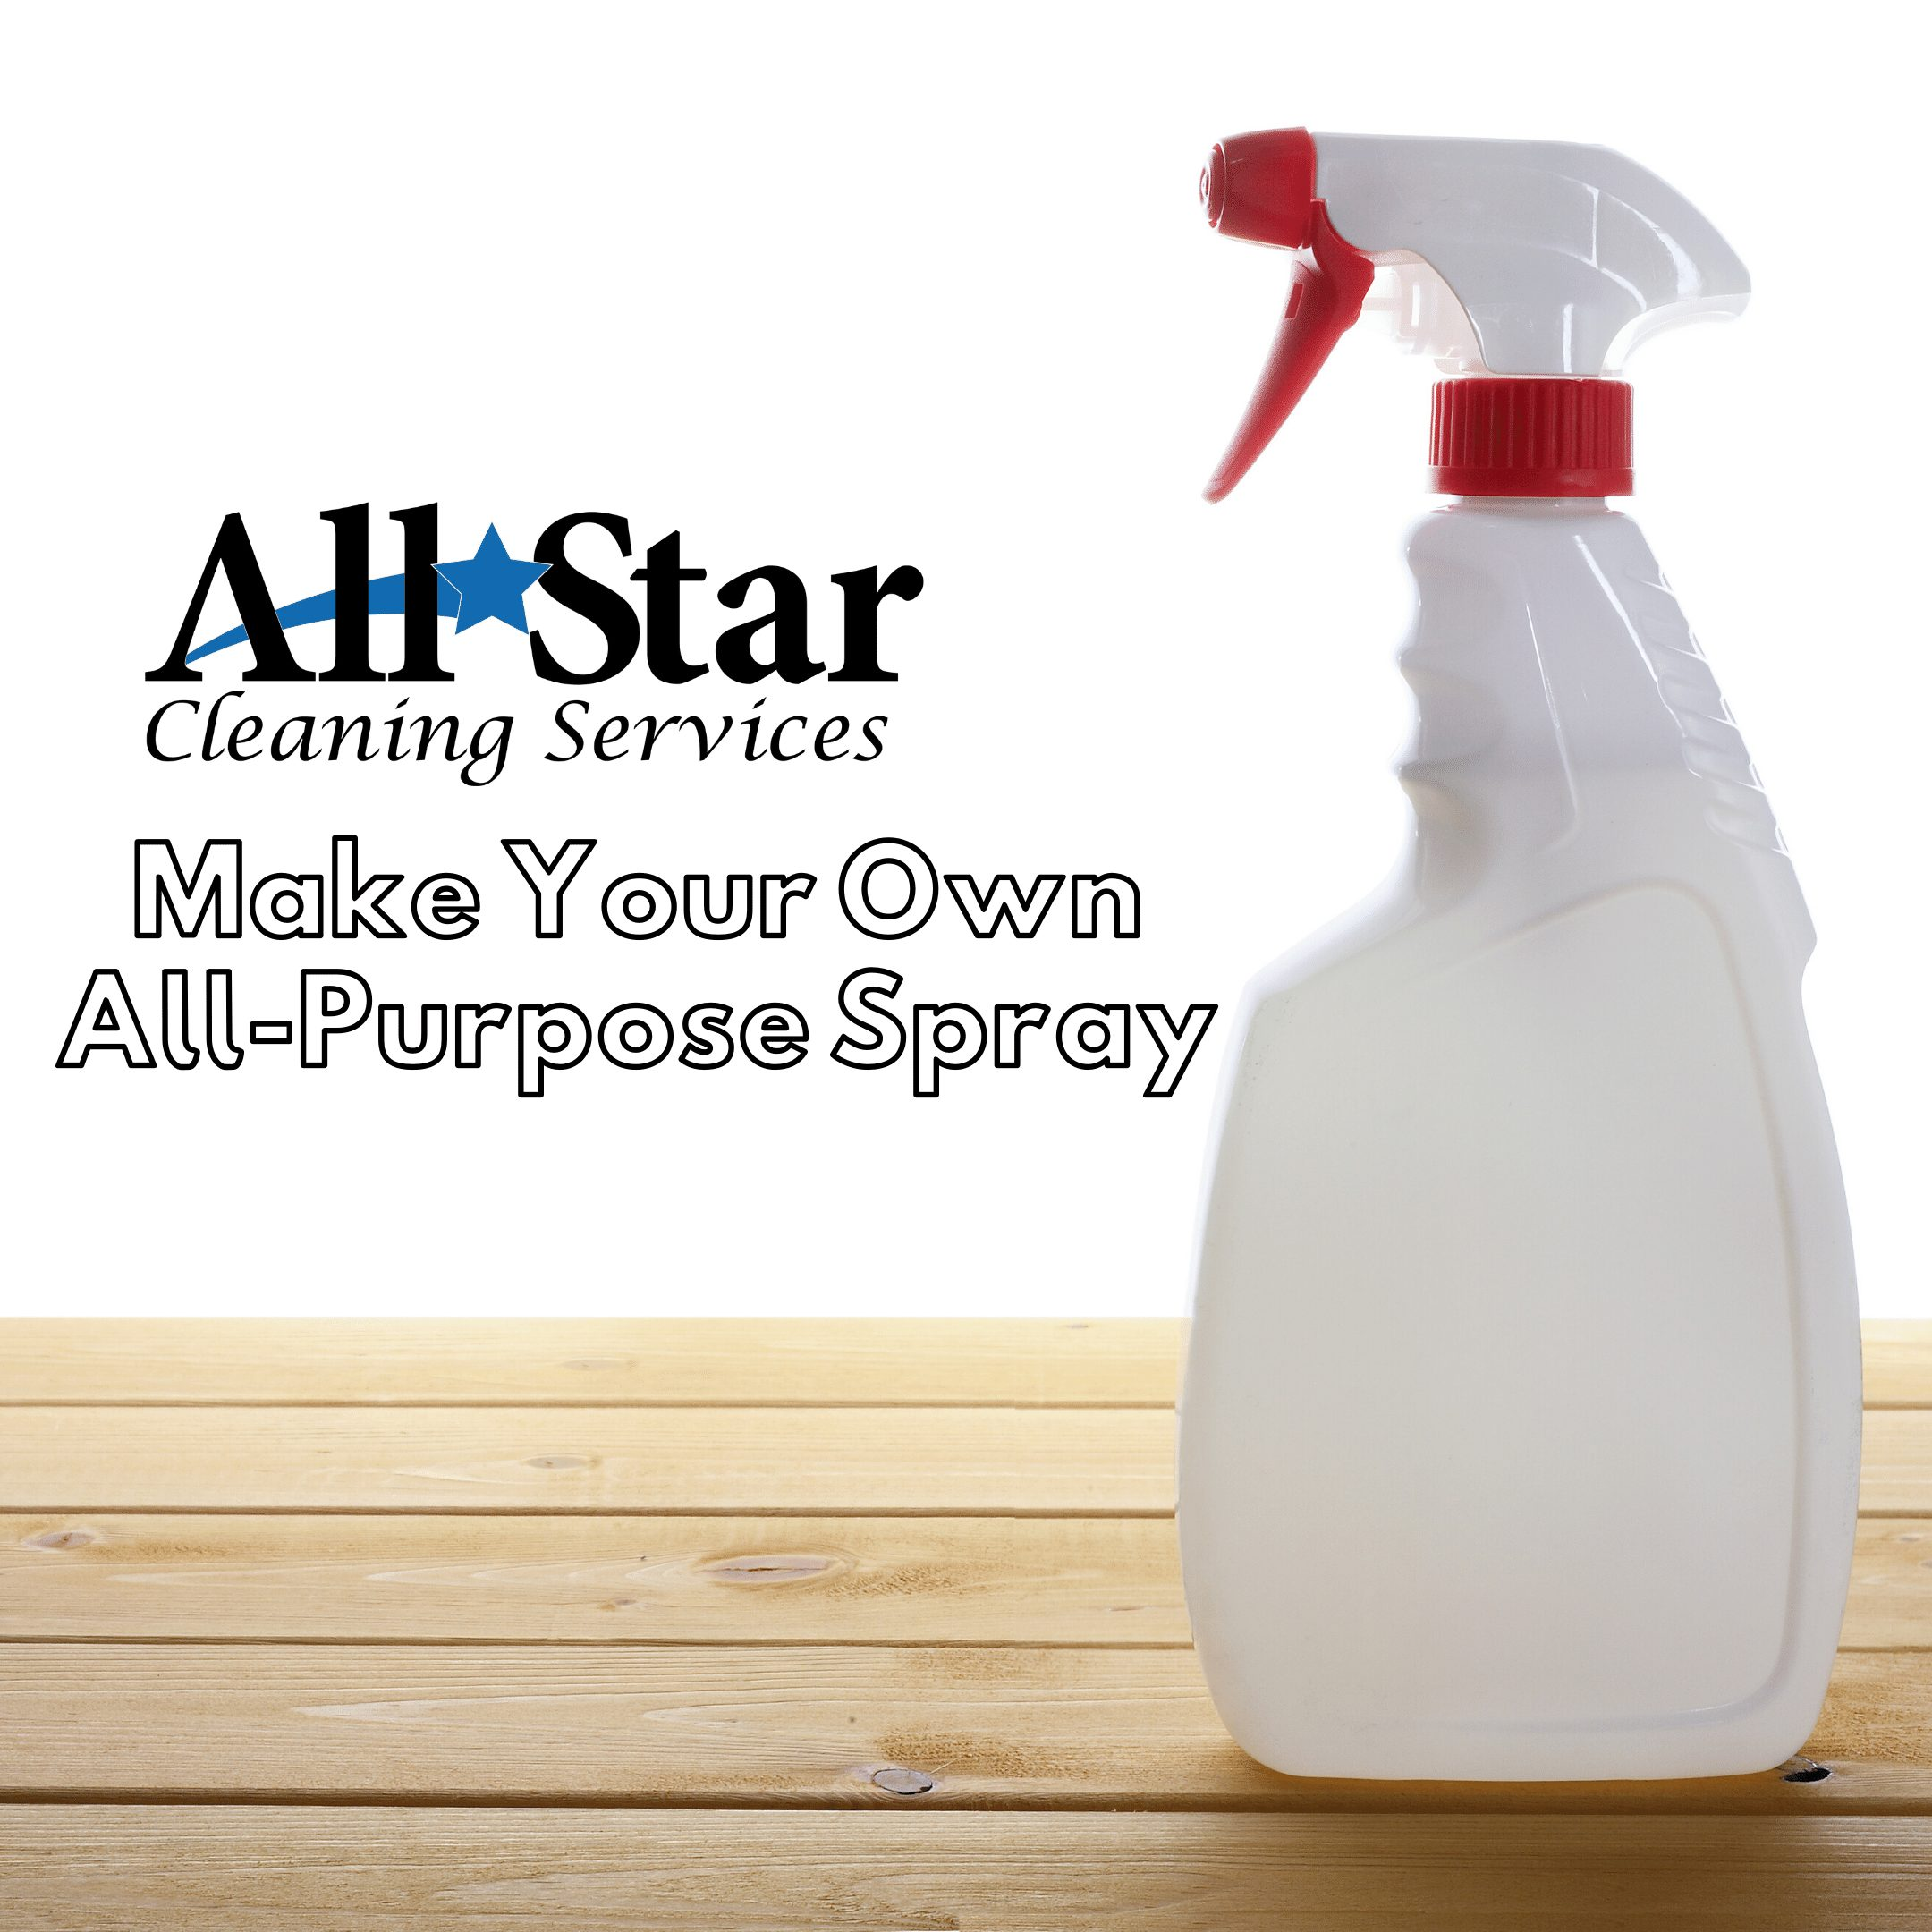 All Star Cleaning - Make Your Own All-Purpose Spray